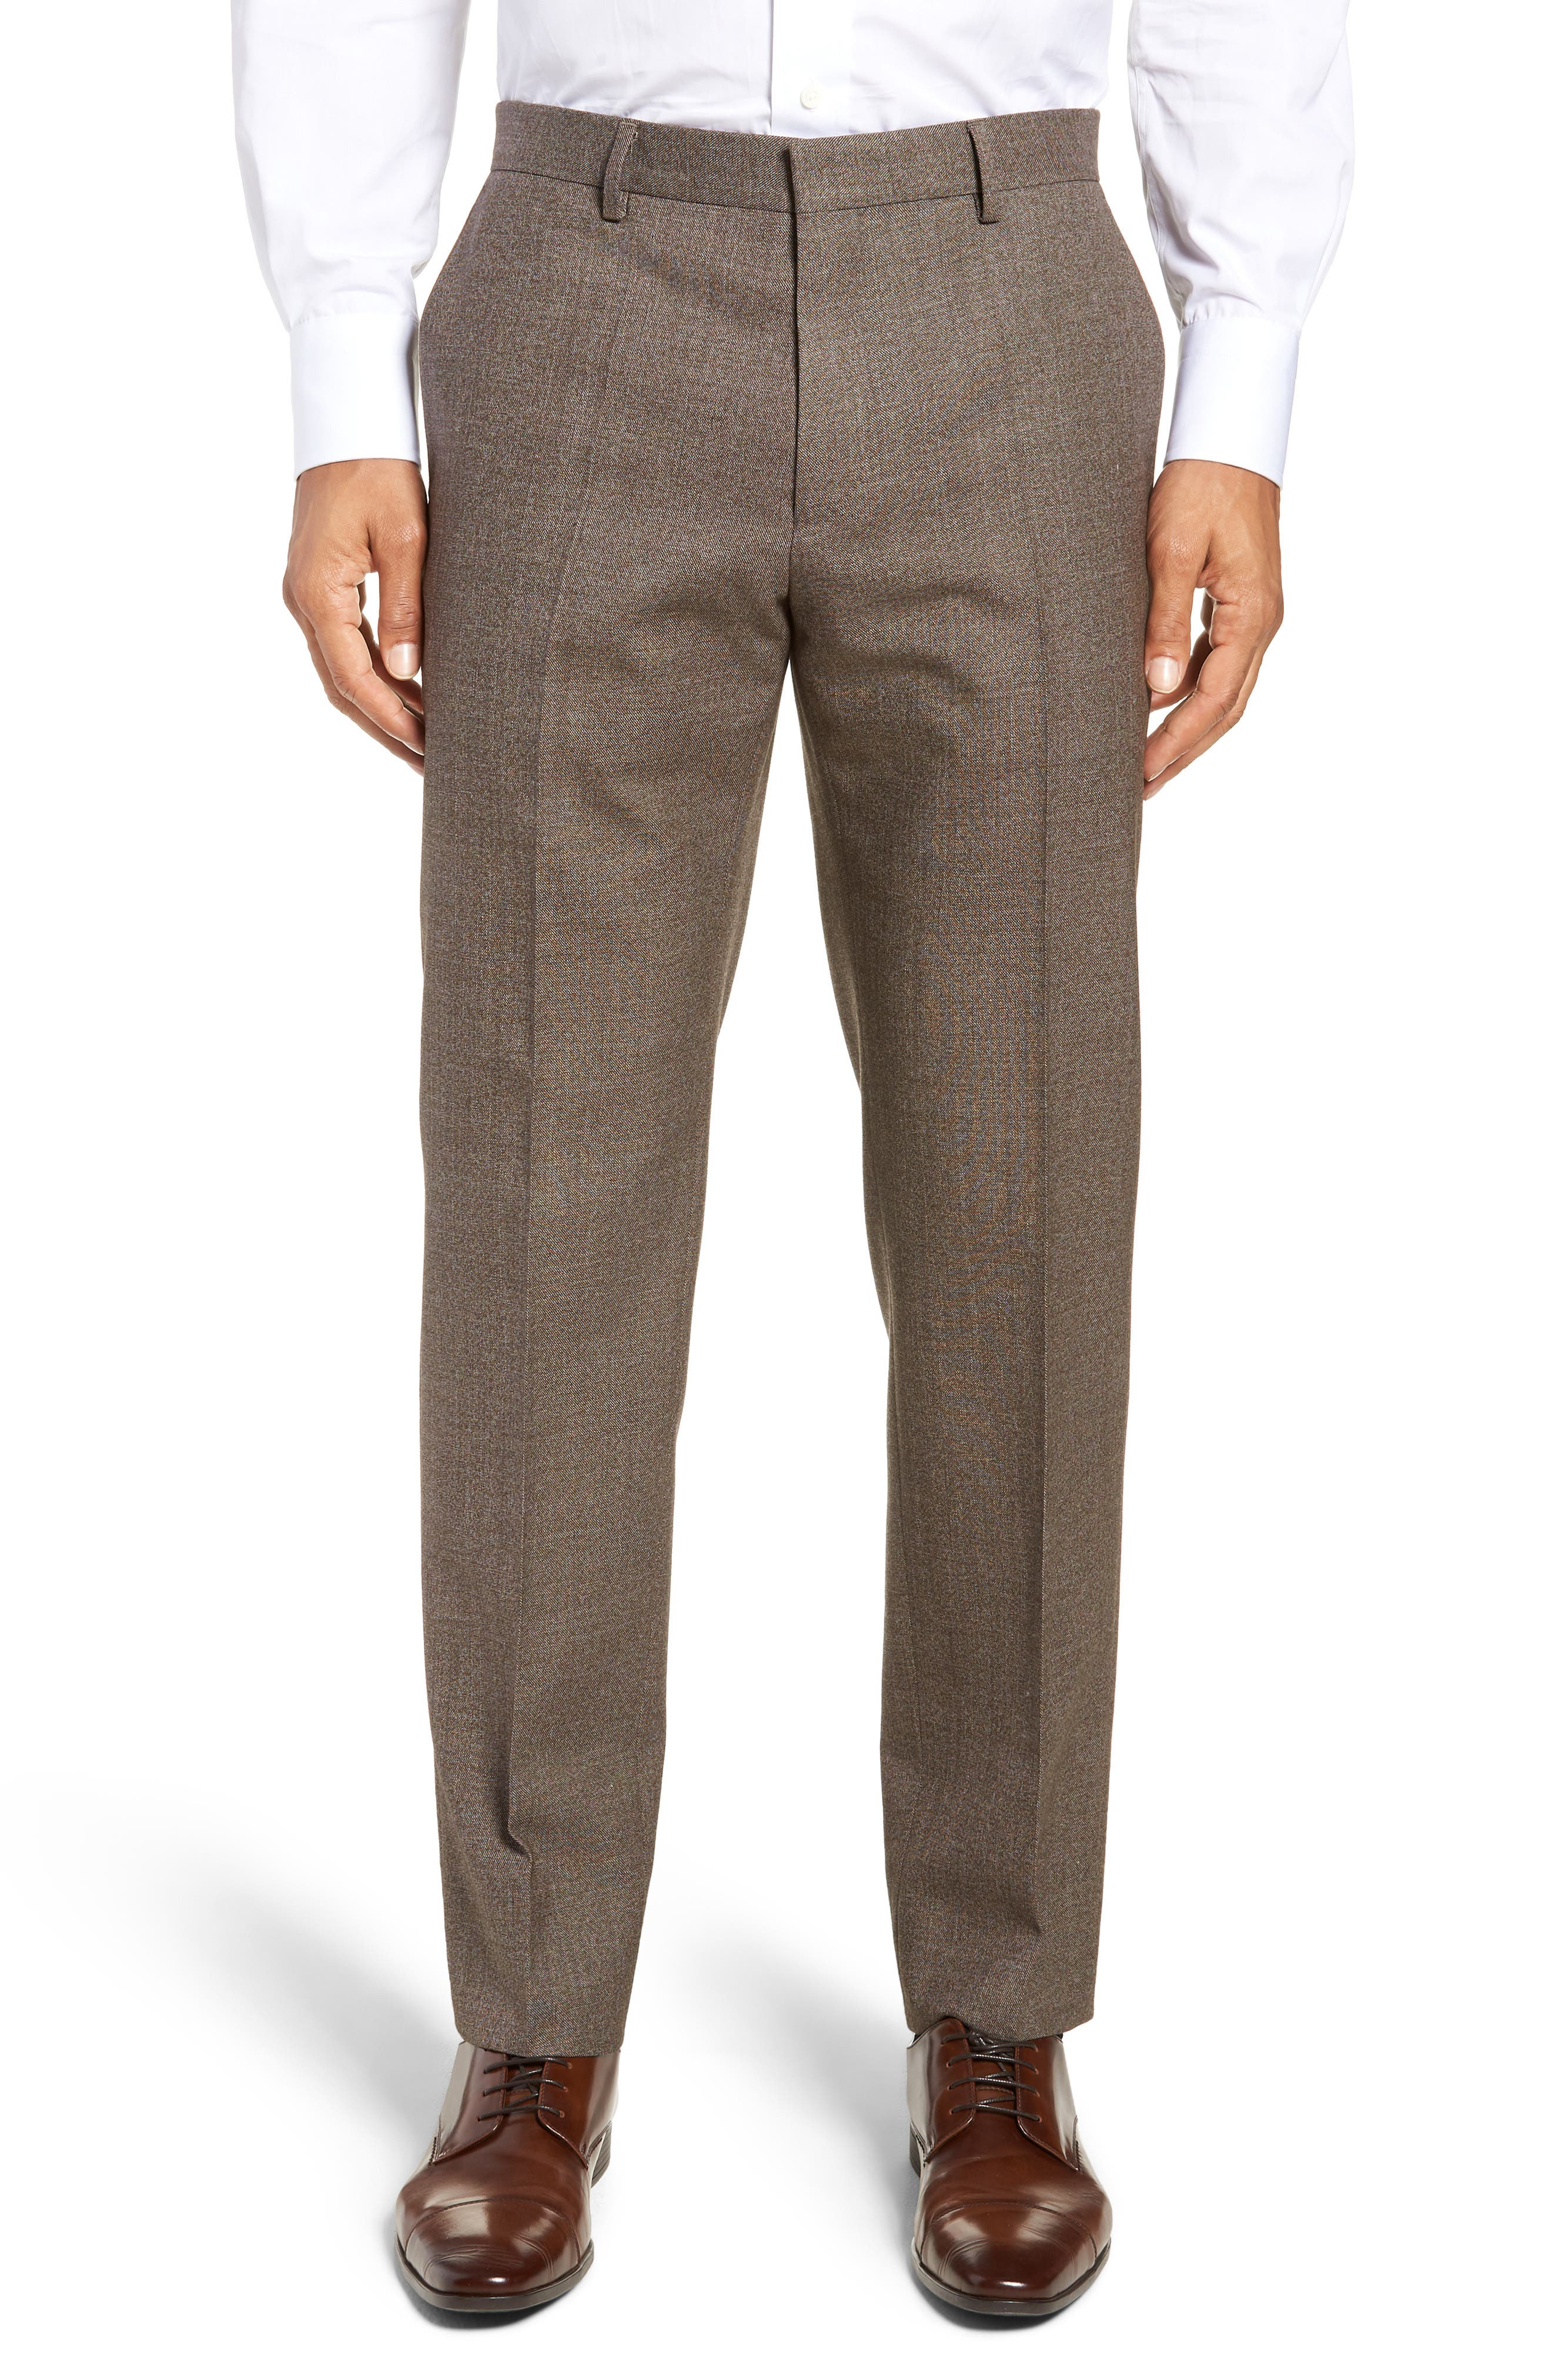 Giro Flat Front Solid Wool & Cotton Trousers,                             Main thumbnail 1, color,                             LIGHT/ PASTEL BROWN